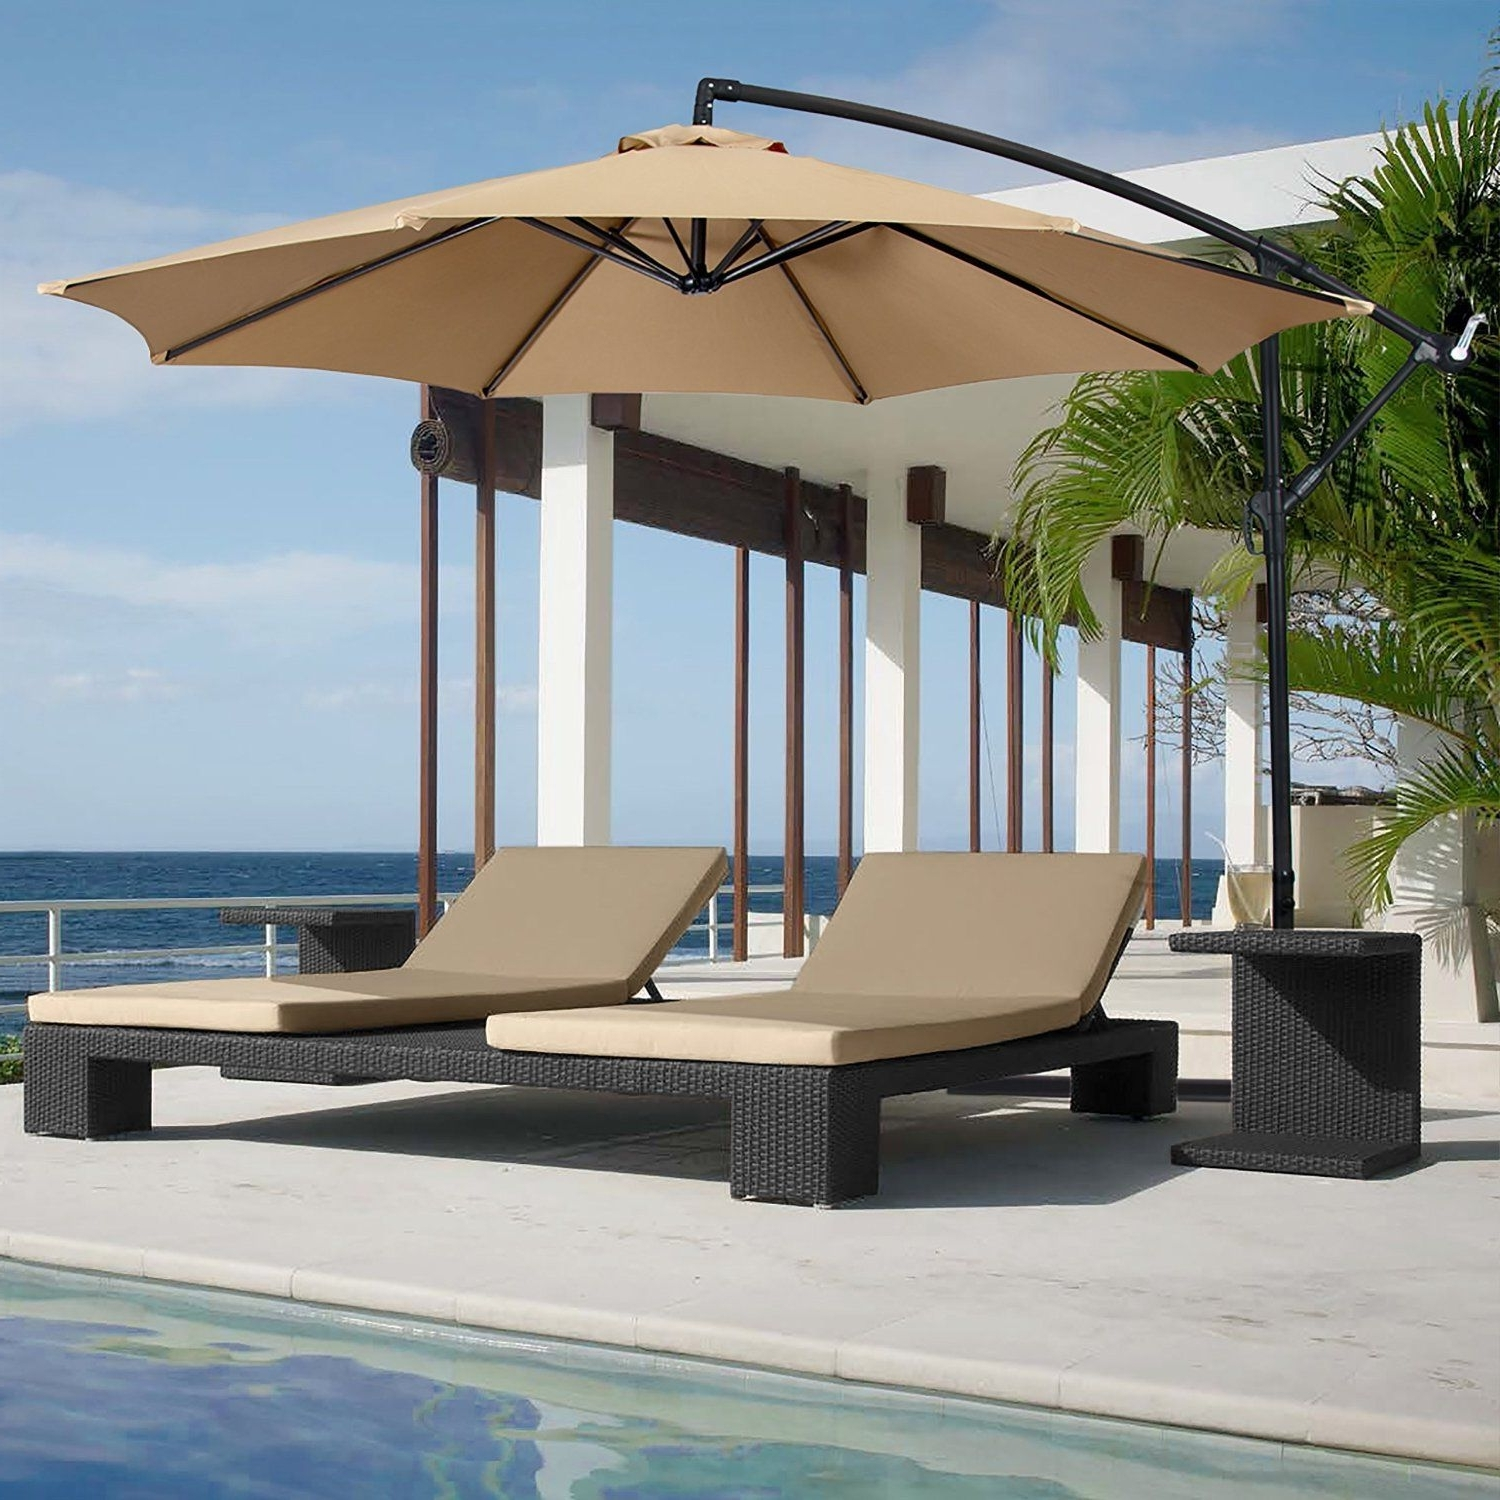 Most Popular Amazon Patio Umbrellas In Amazon : Best Choice Products® Patio Umbrella Offset 10' Hanging (View 8 of 20)